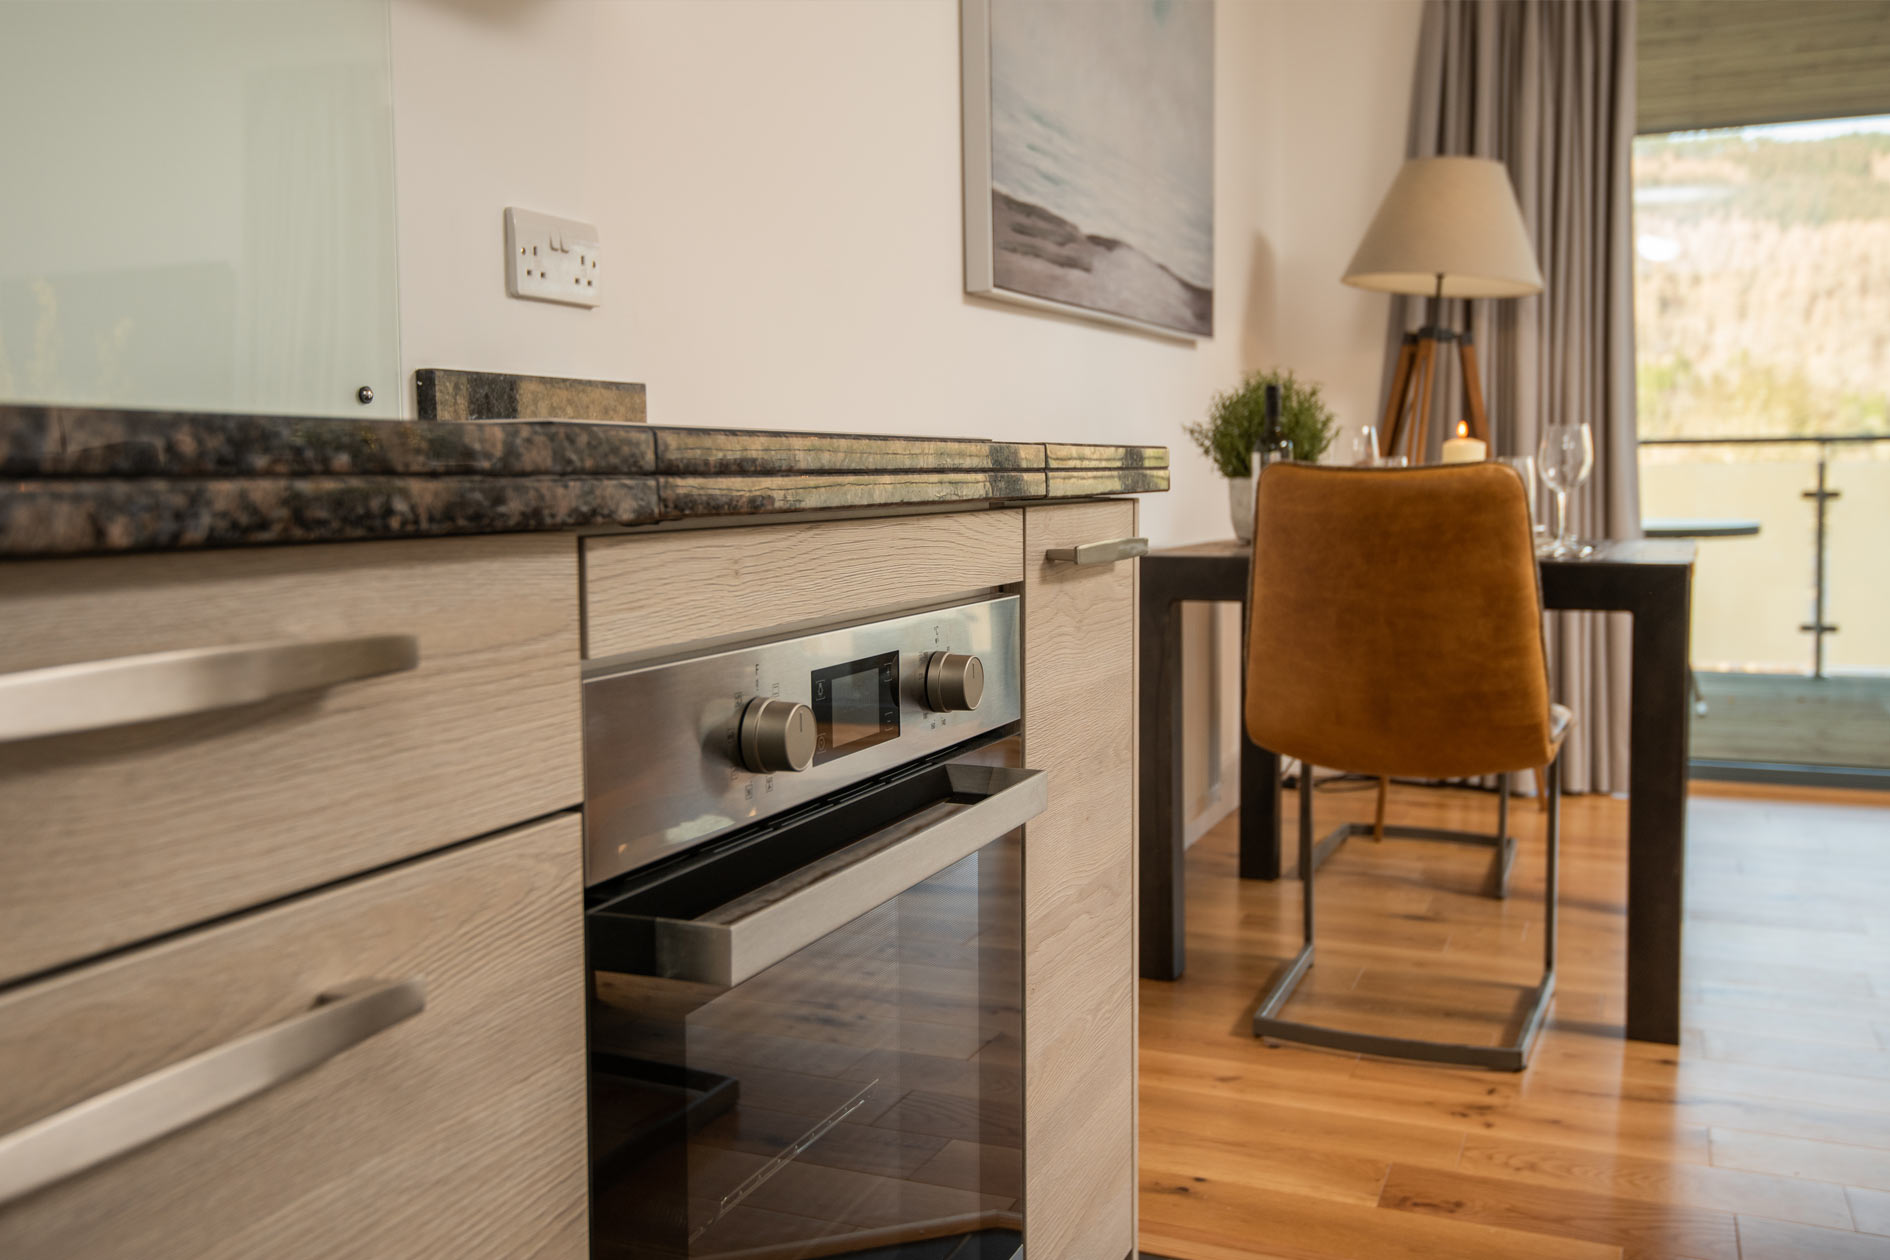 Close-up Of Kitchen Cupboards With Stainless Steel Oven And Leather Dining Chair With Lamp And Table Beyond